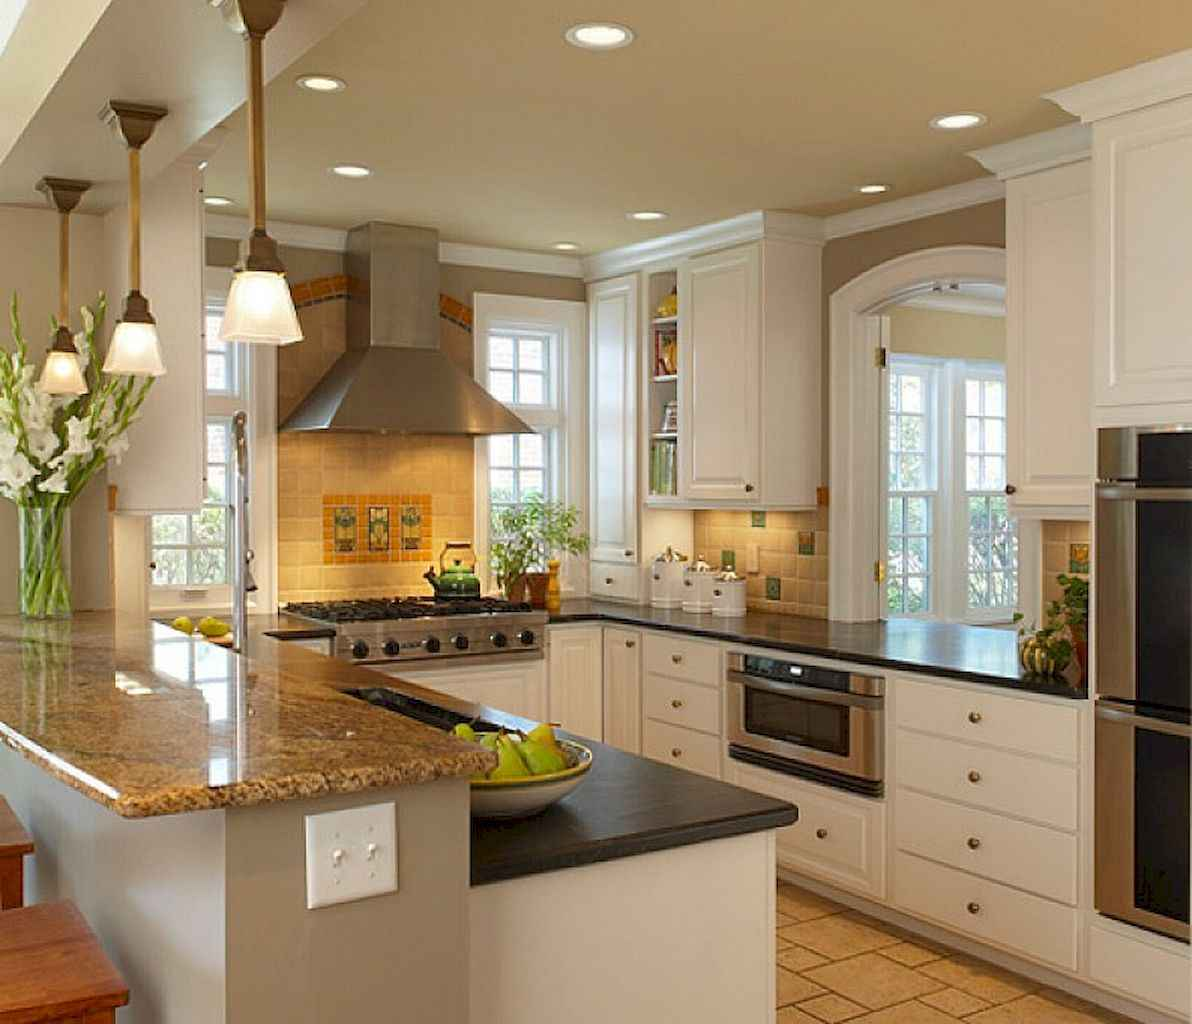 120 beautiful small kitchen design ideas and remodel to inspire your kitchen beautiful (66)